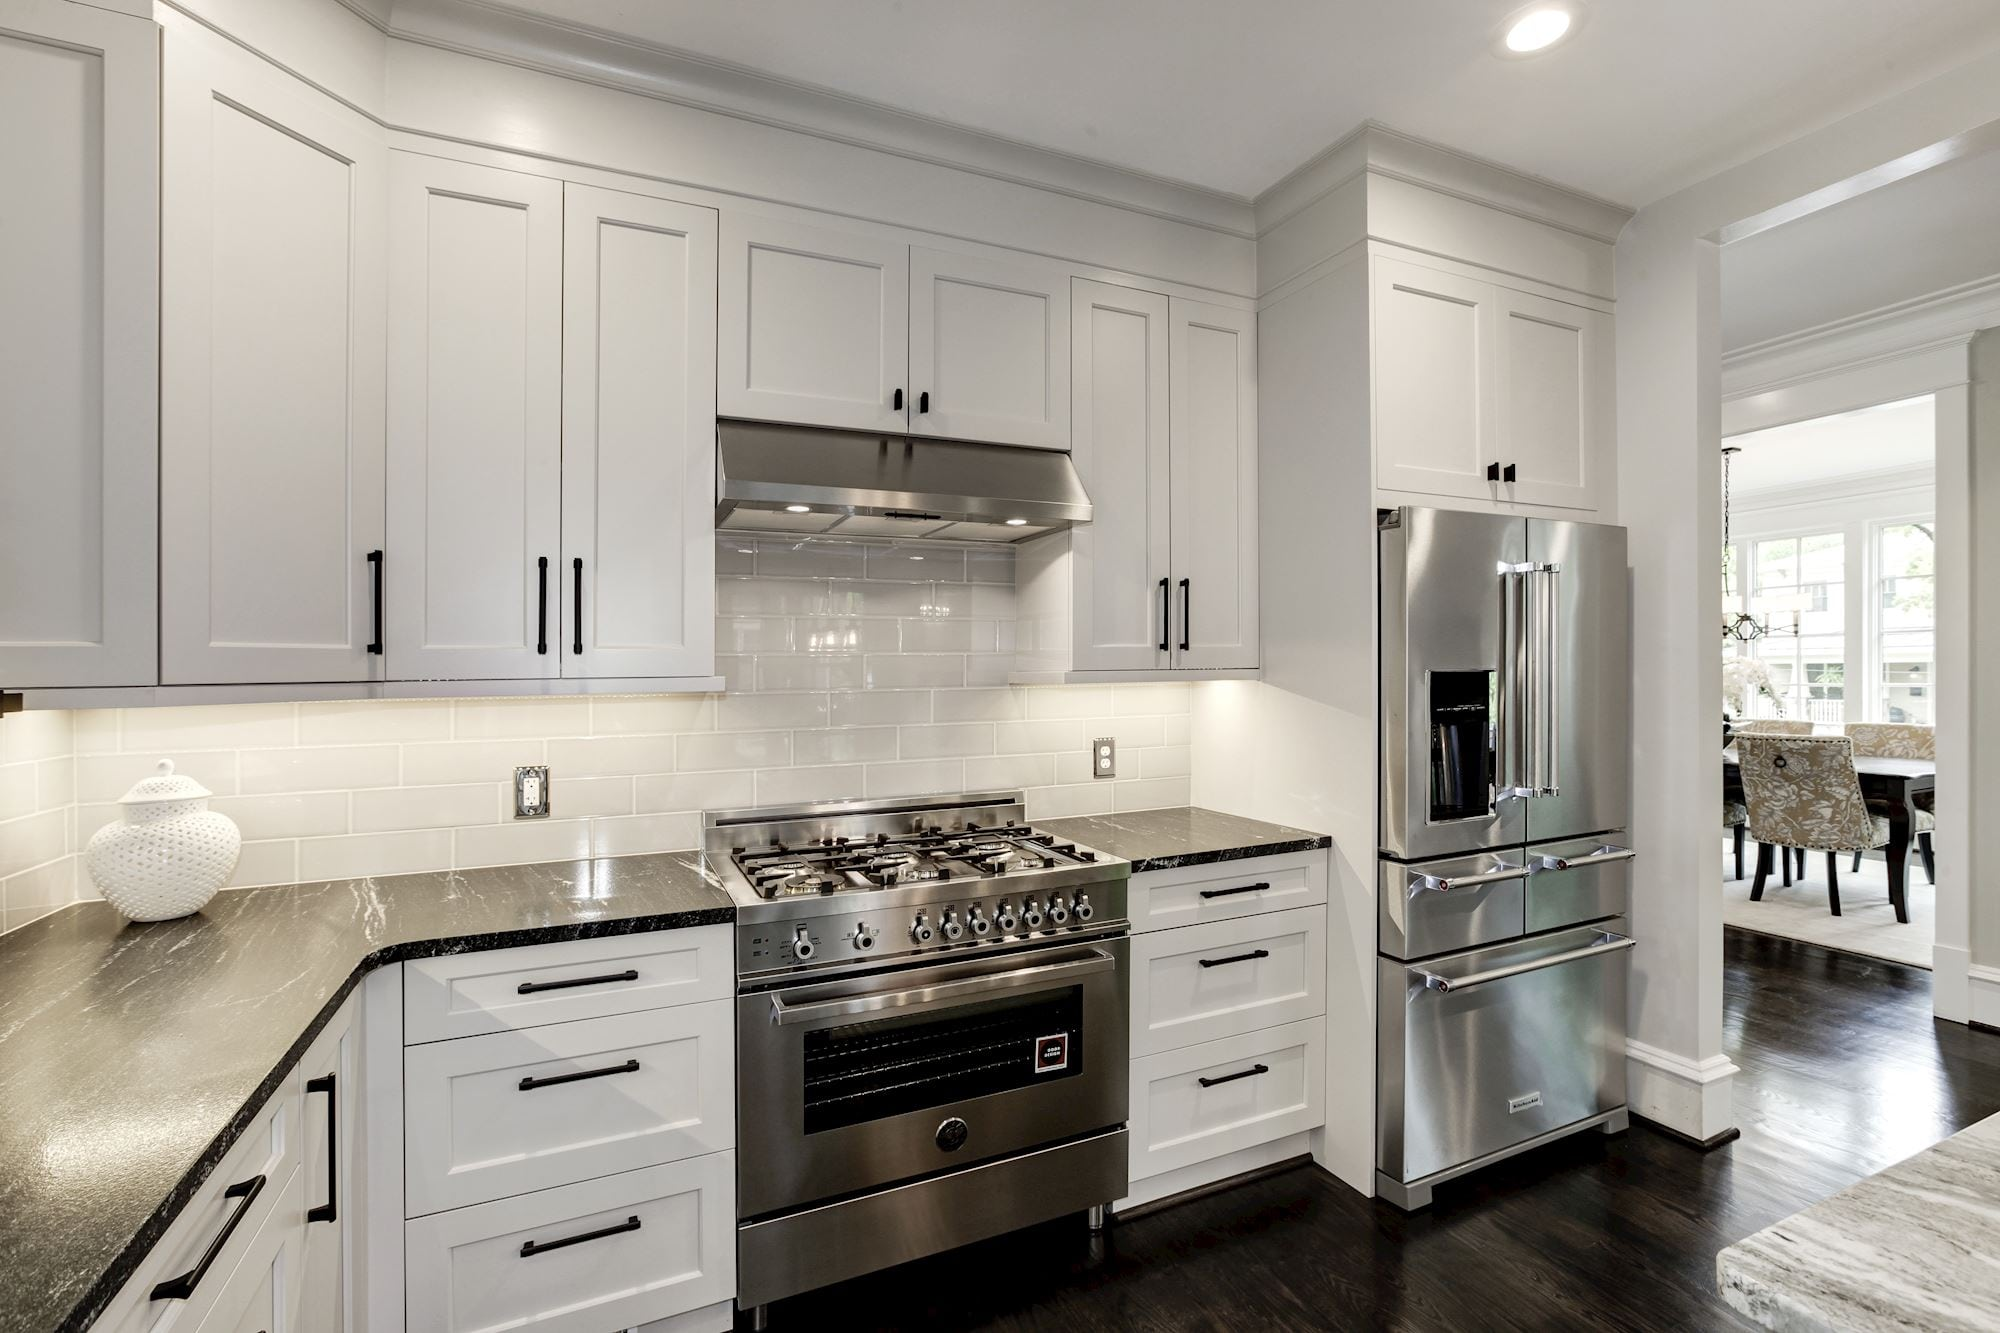 Kitchen with under counter lighting and white cabinetry. Custom Home by Custom Builder, North Arlington, VA 22207